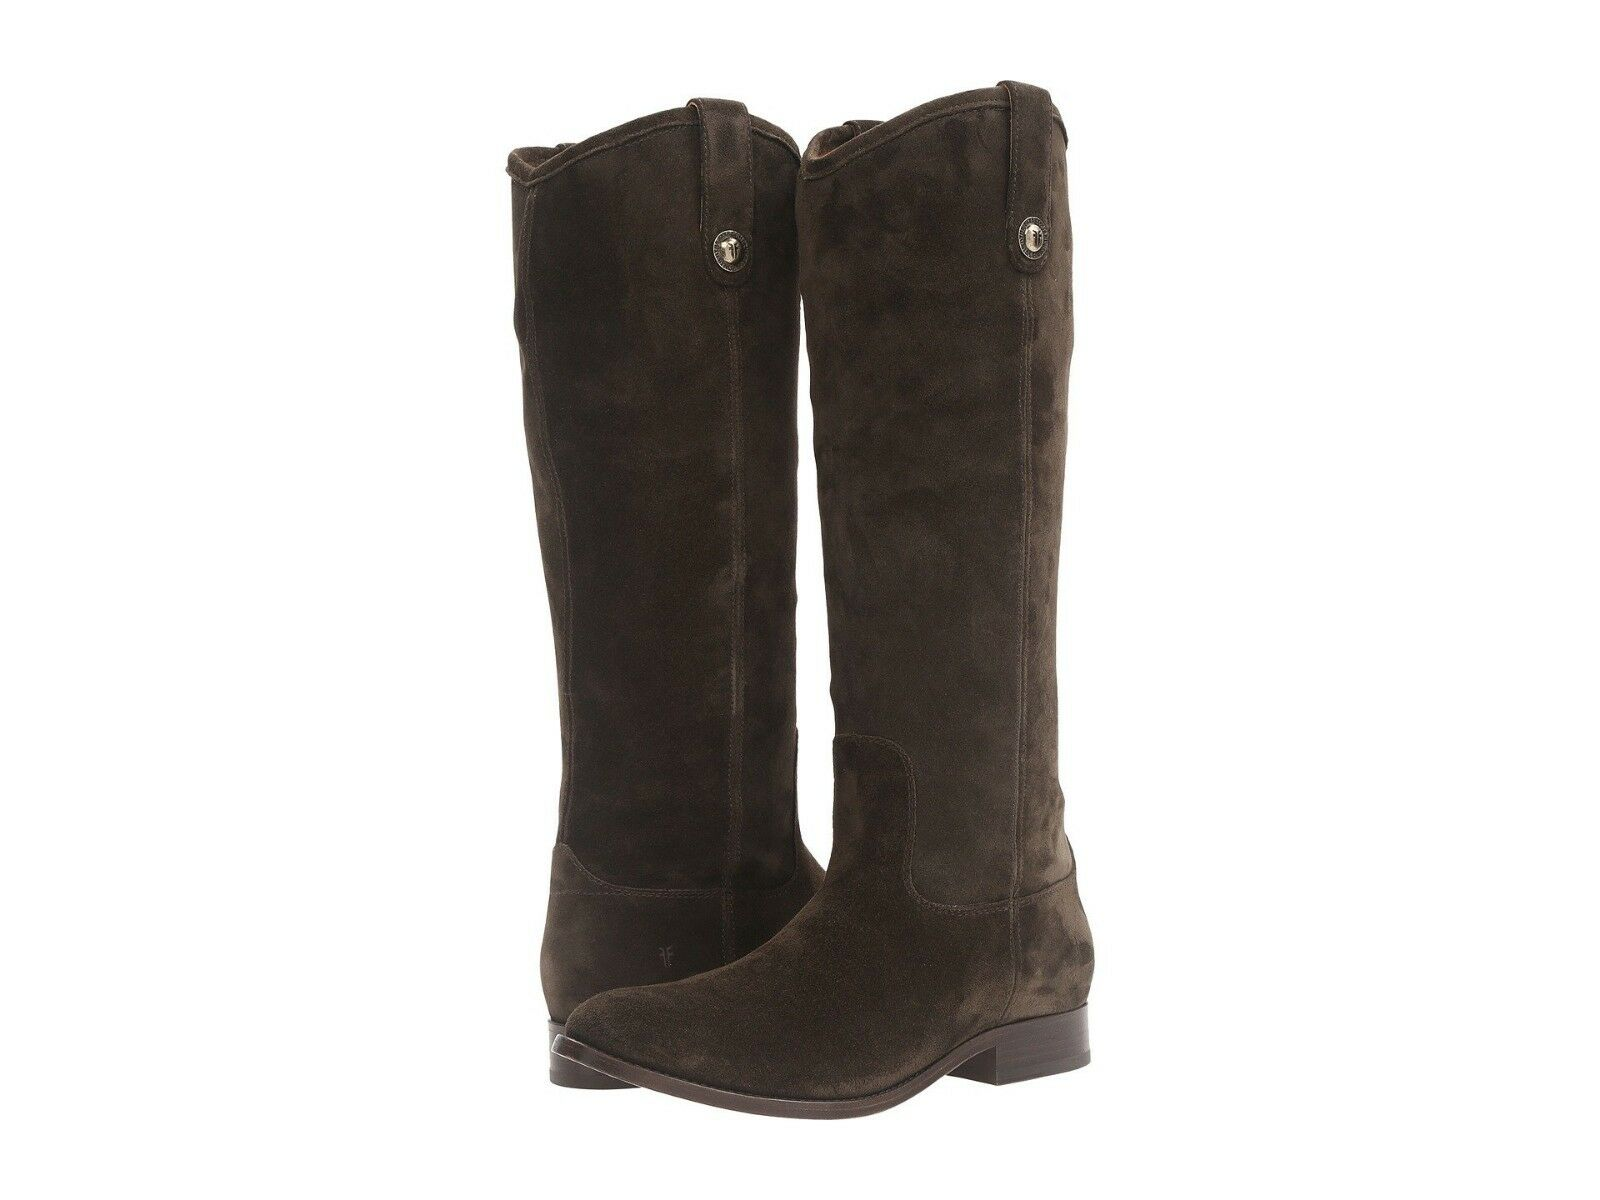 368! NEW Donna FRYE MELISSA BUTTON FATIGUE VINTAGE LEATHER RIDING BOOTS 6.5 !!